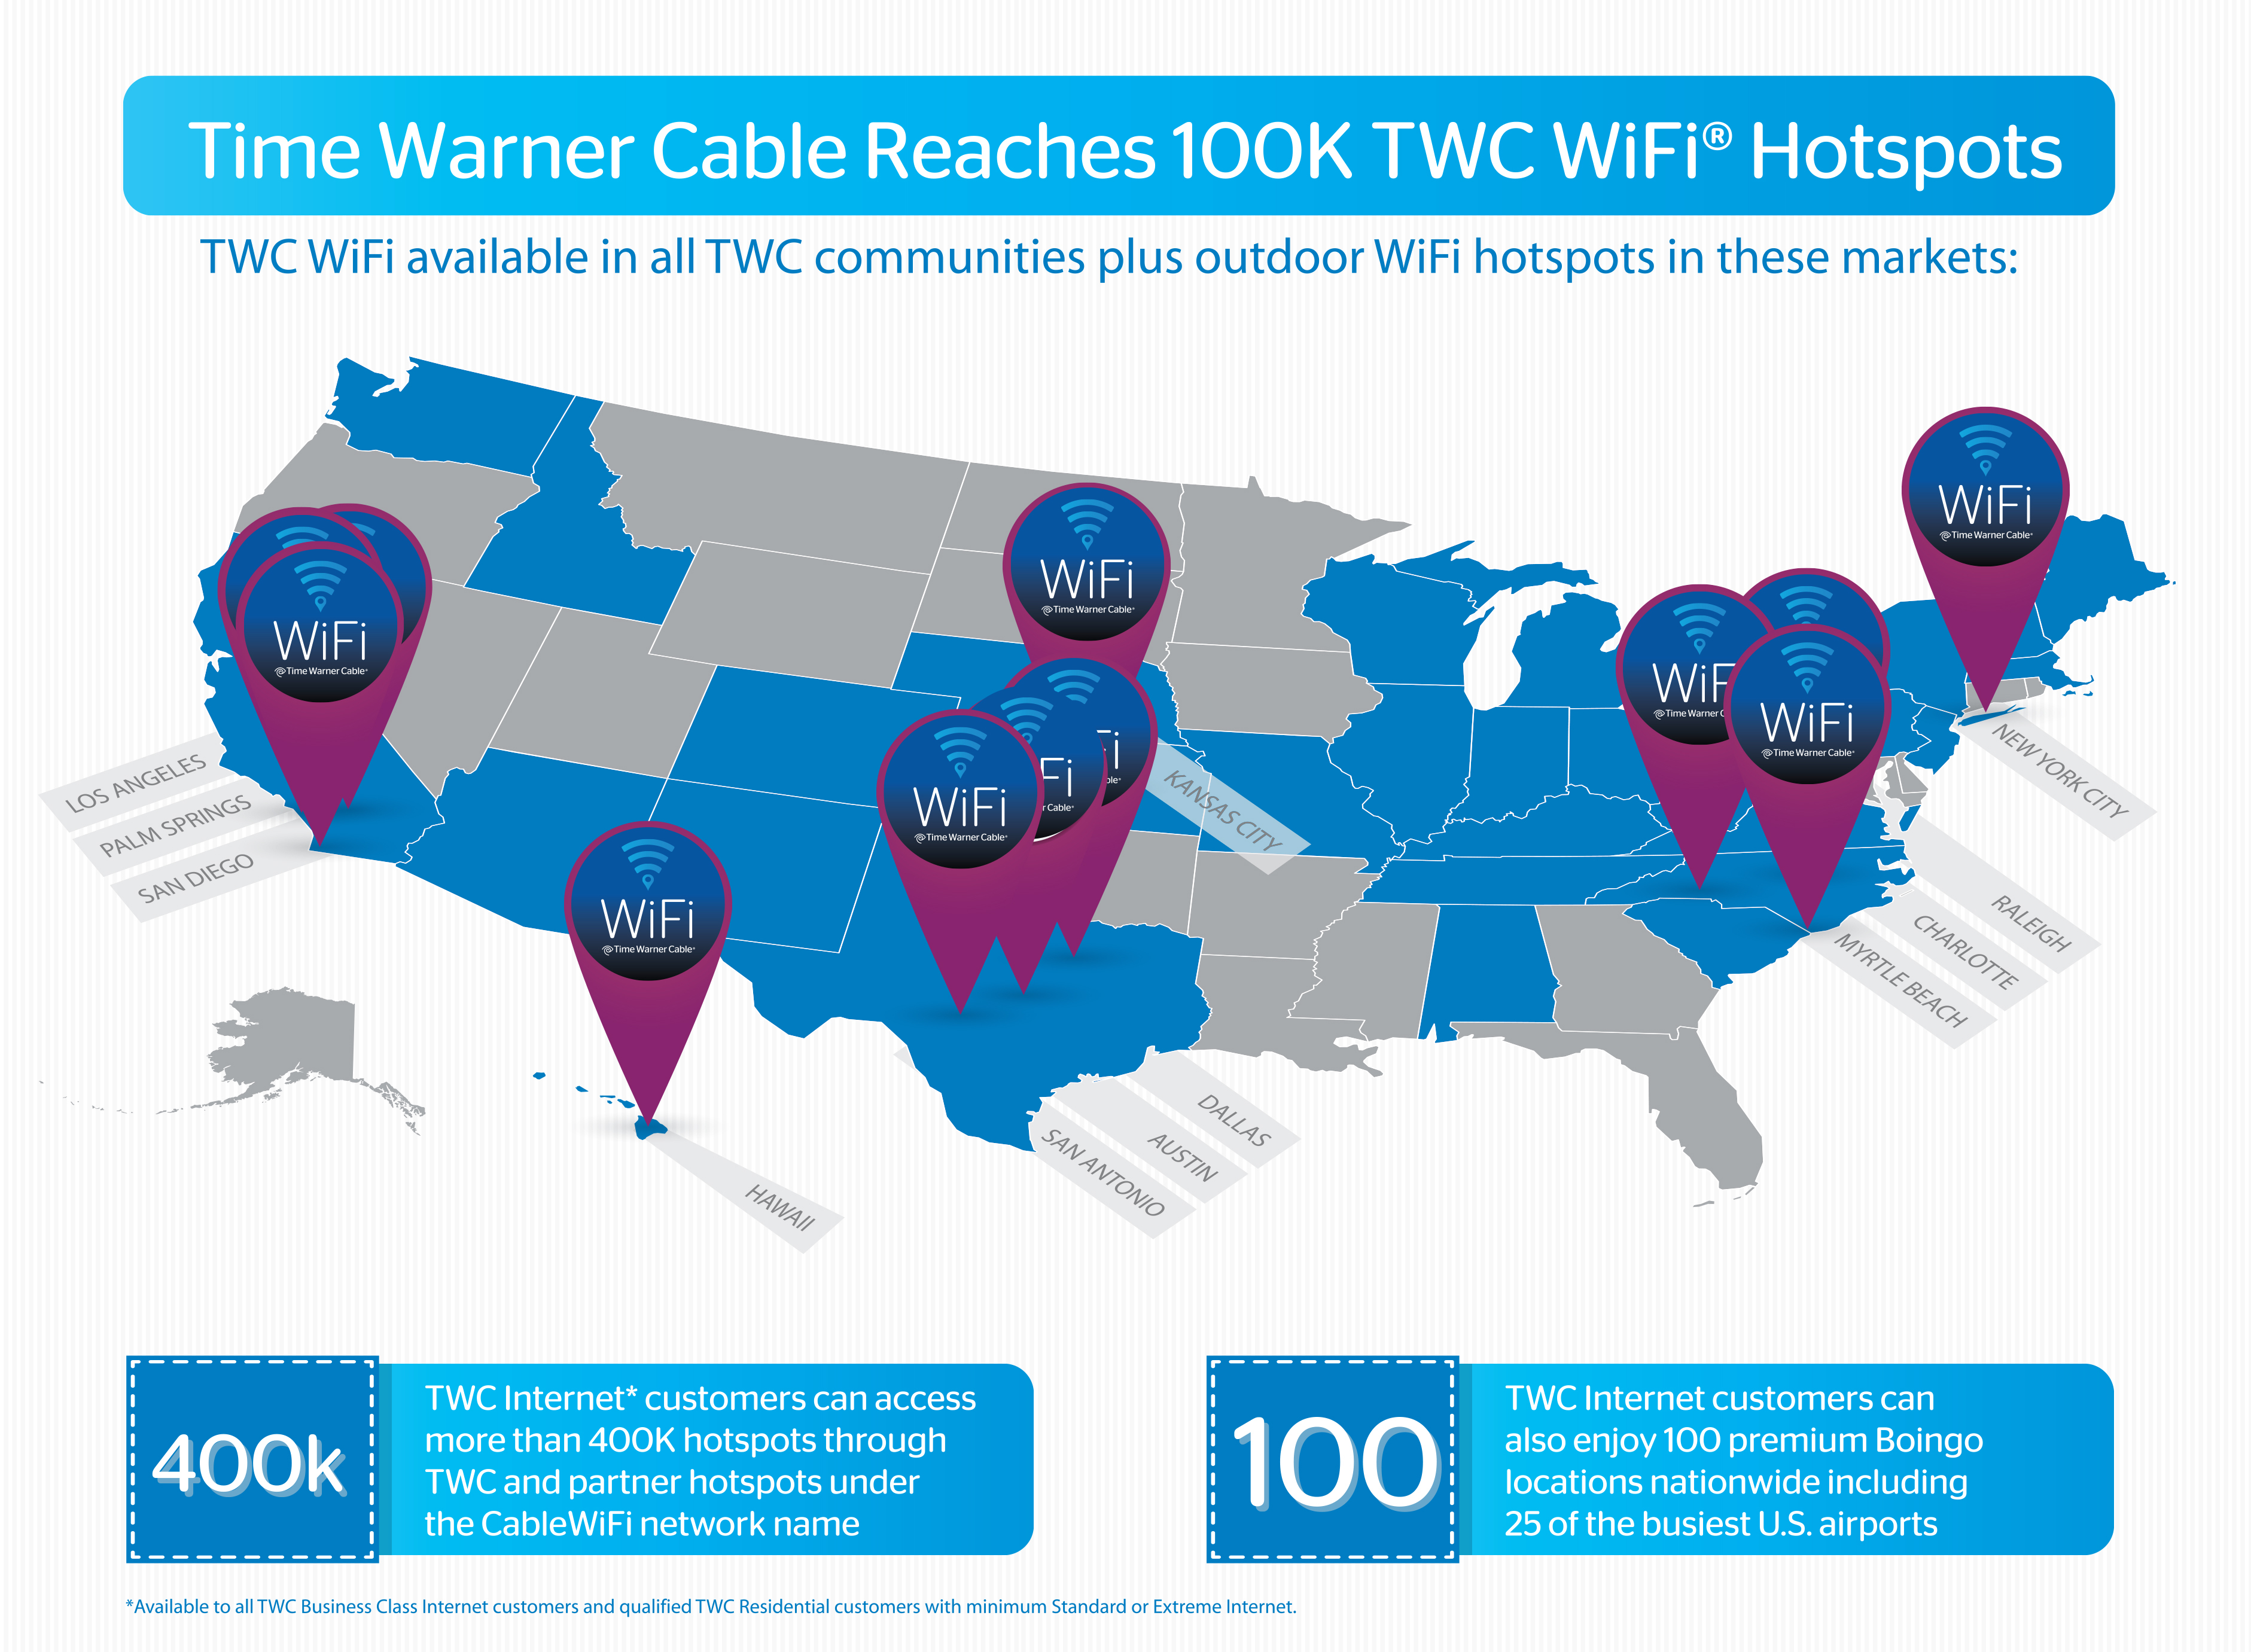 Twc Time Warner Cable Nc: Time Warner Cable WiFi Network Grows to More Than 100K TWC WiFi rh:businesswire.com,Design